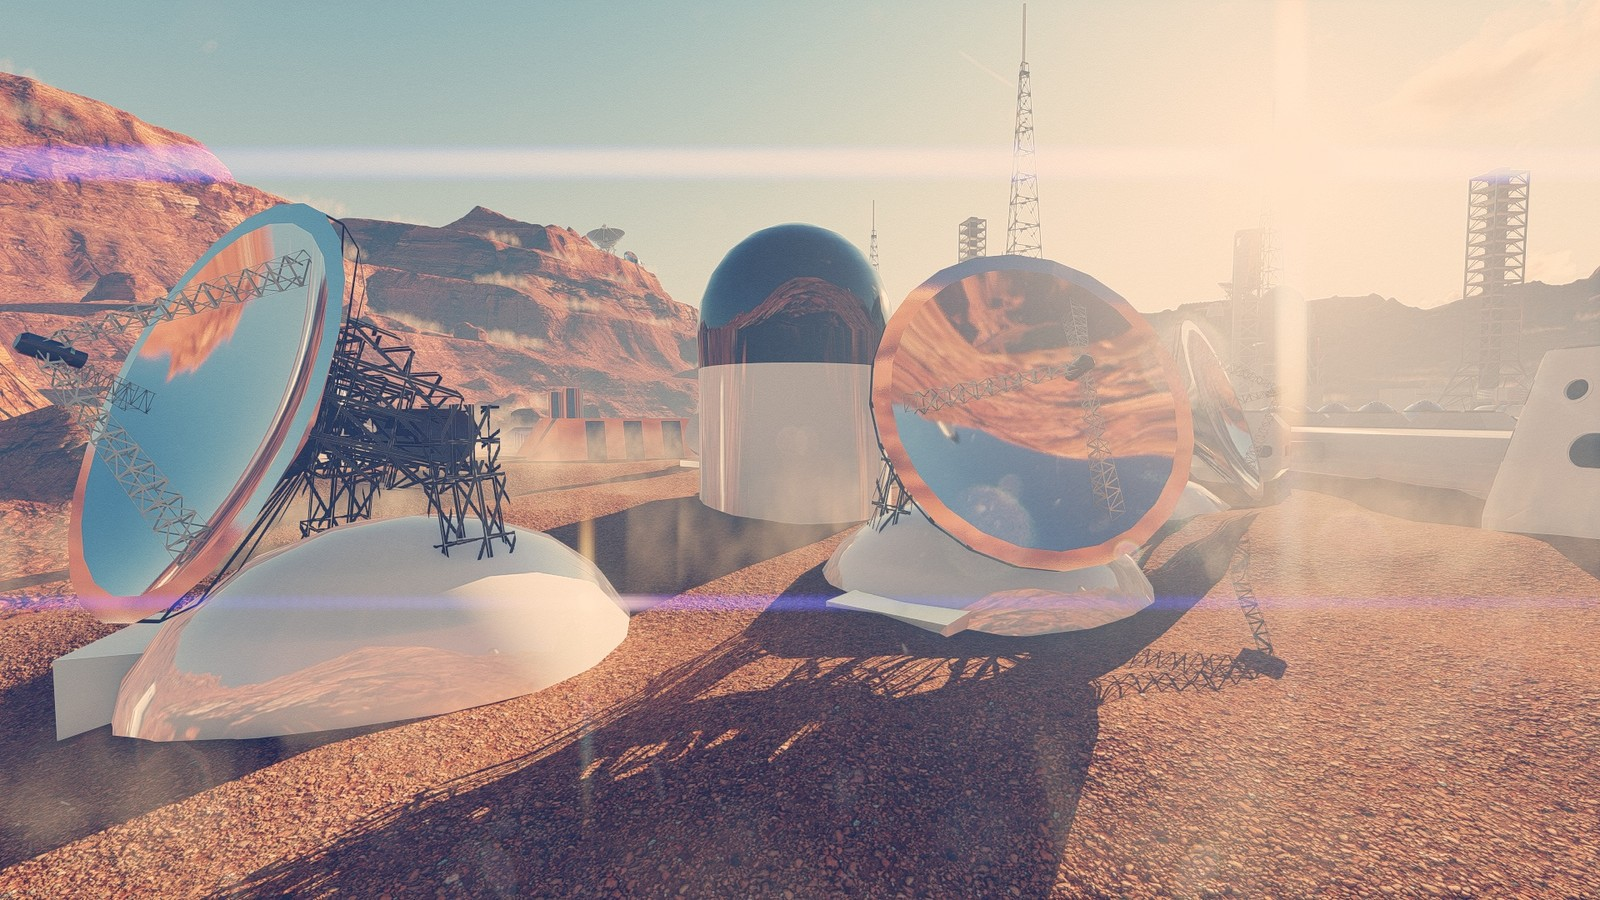 All Martian structures are designed and 3D modelings by Serdar Çakmak, Pixani Studios MARS PROJECT